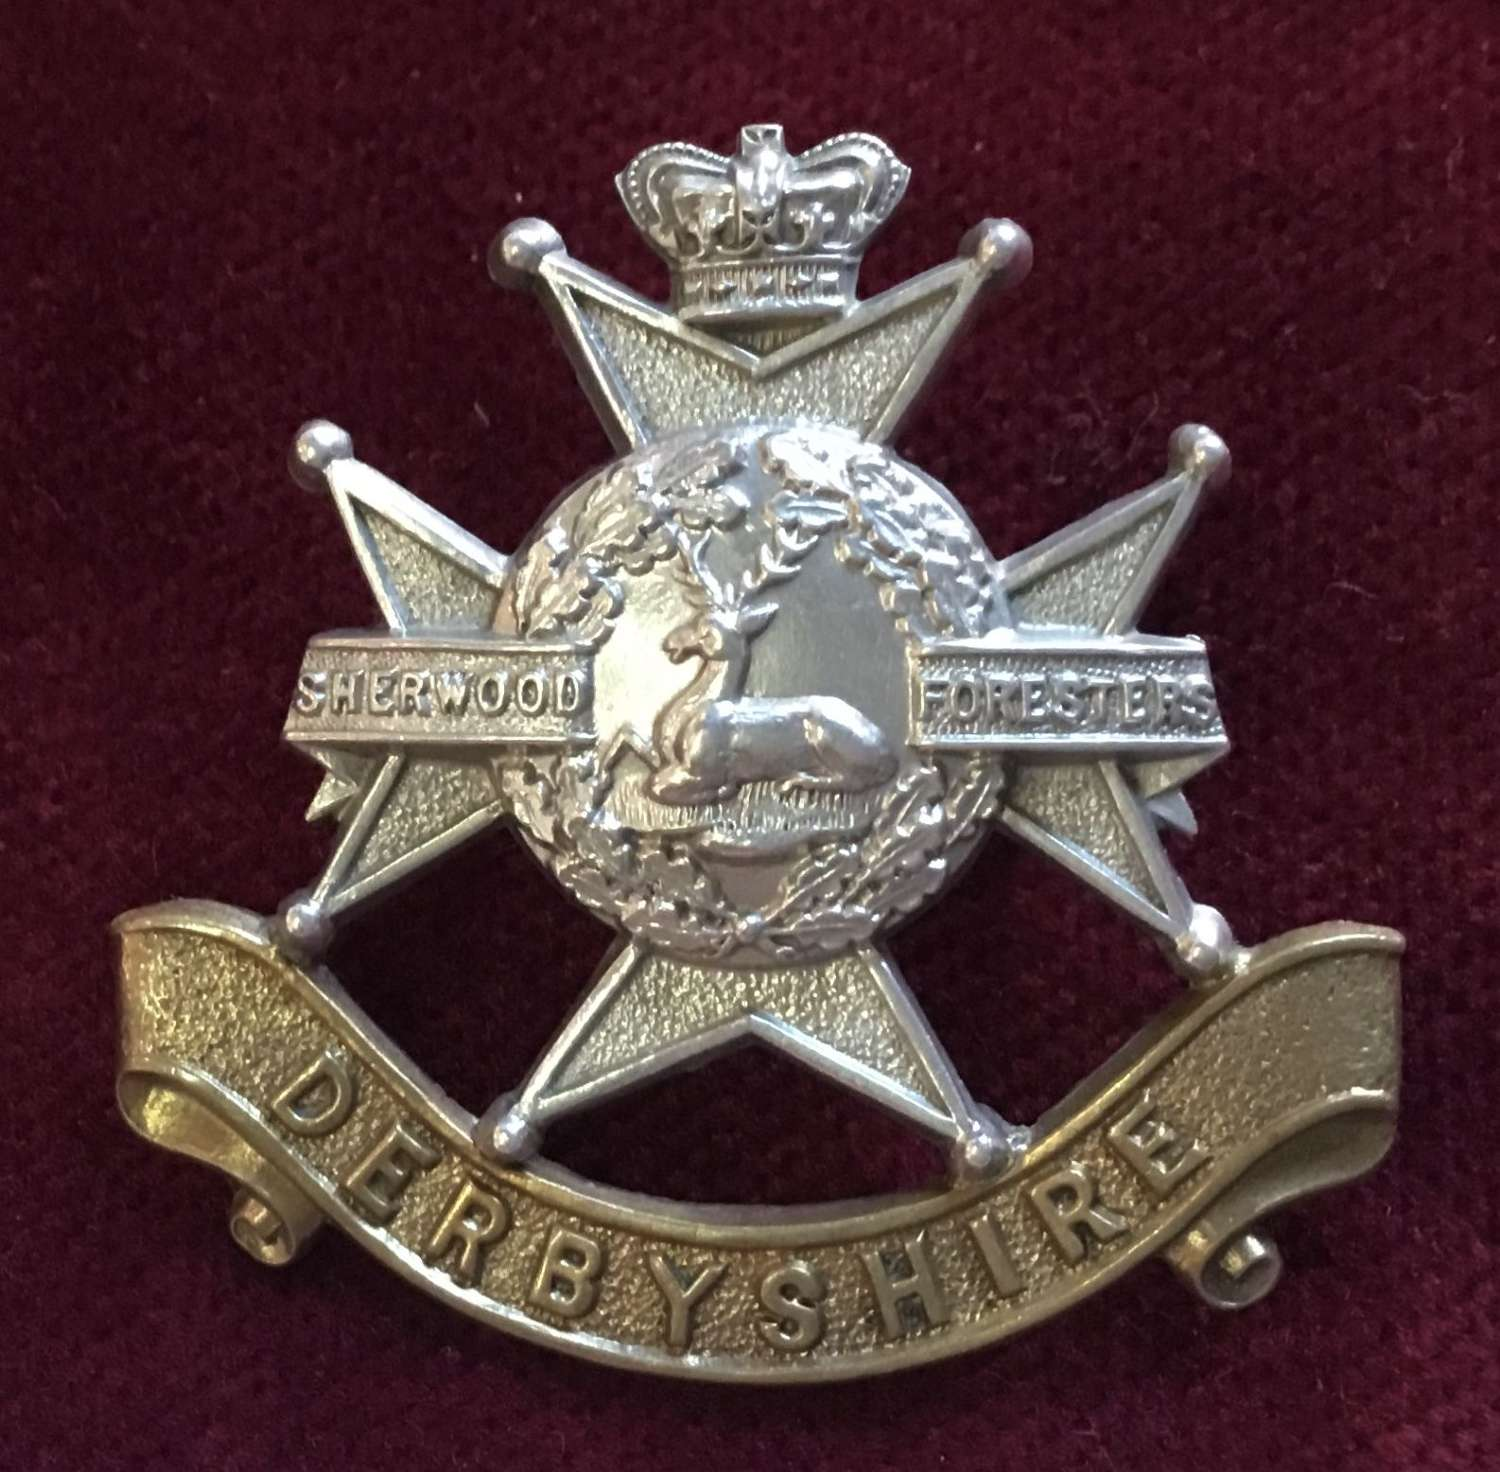 Sherwood Foresters (Derbyshire) Regt Cap Badge